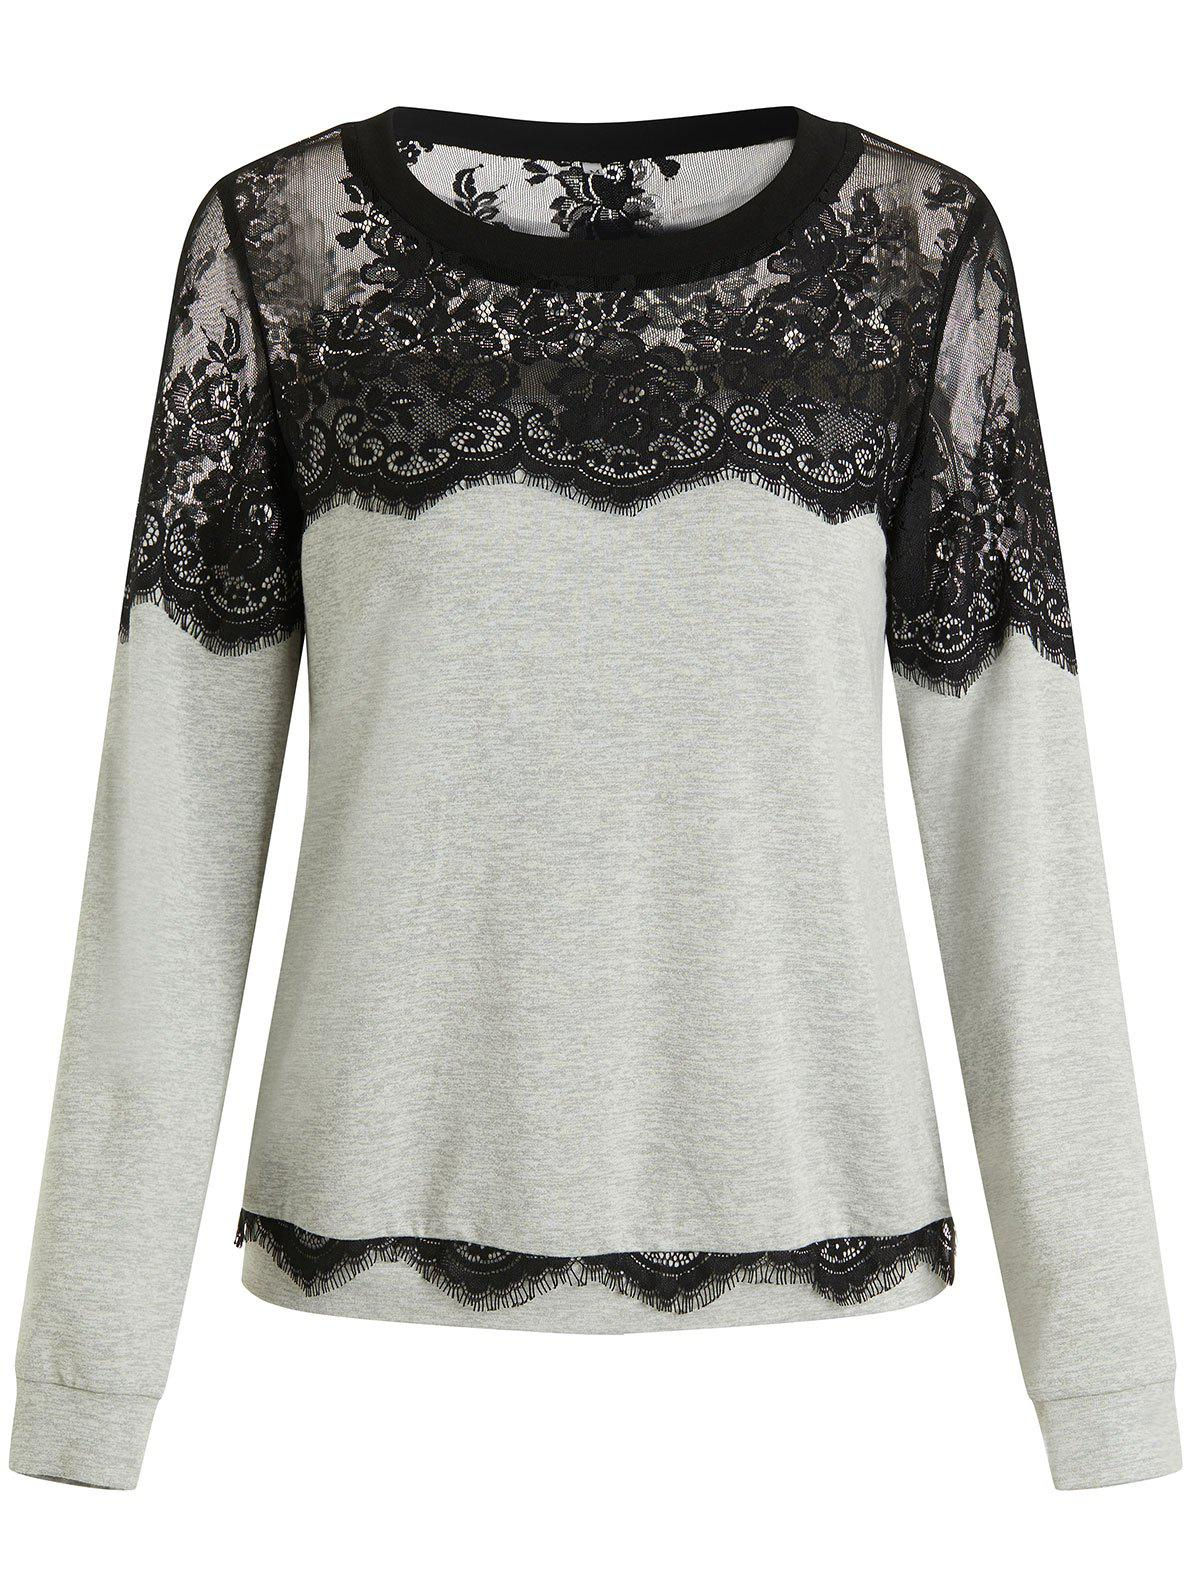 Lace Flower Spliced Sweatshirt